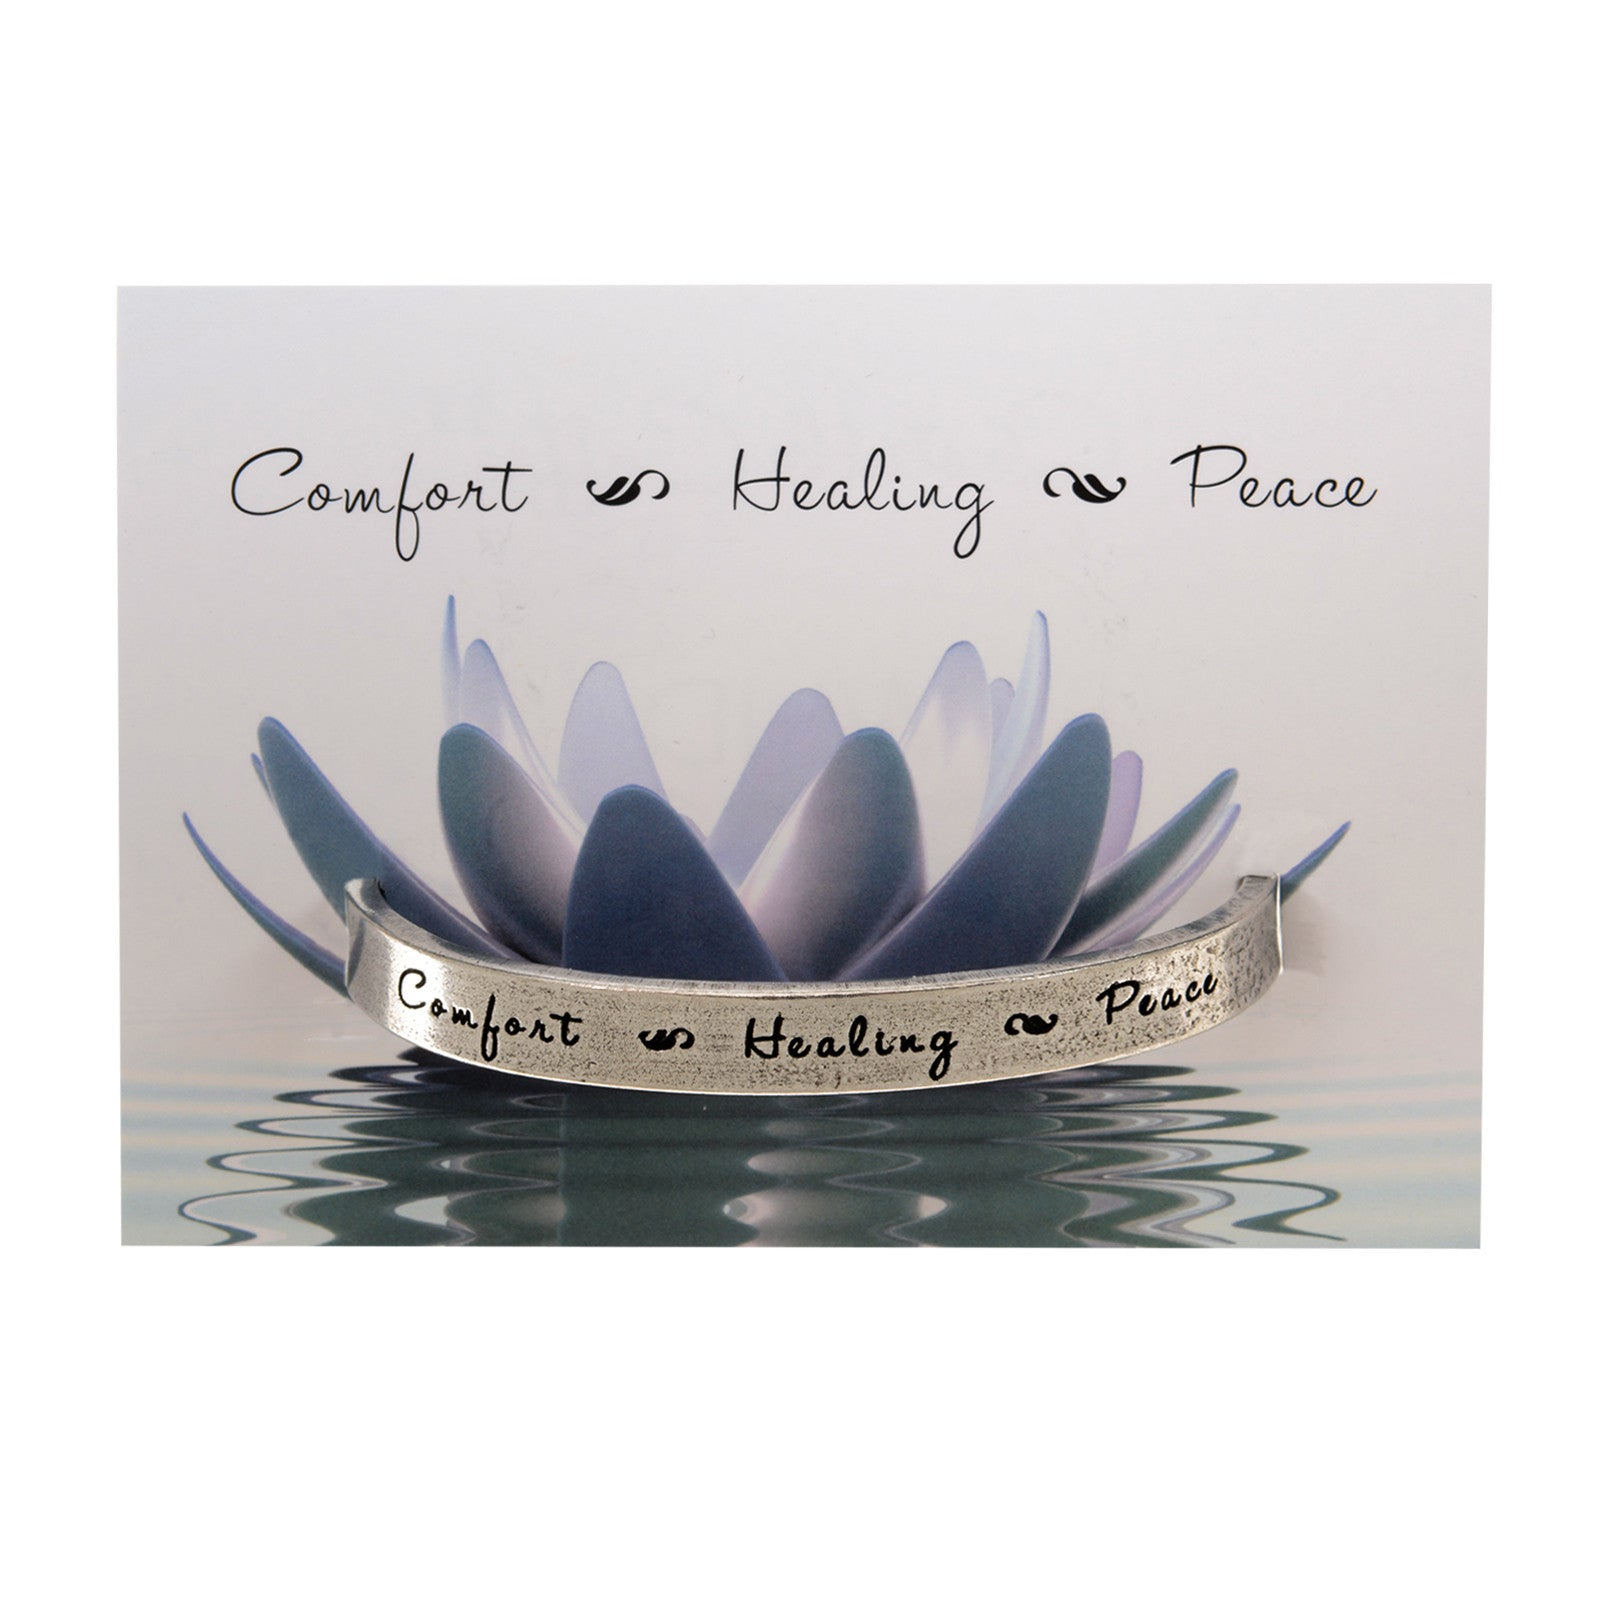 Comfort-Healing-Peace Quotable Cuff Bracelet - Whitney Howard Designs